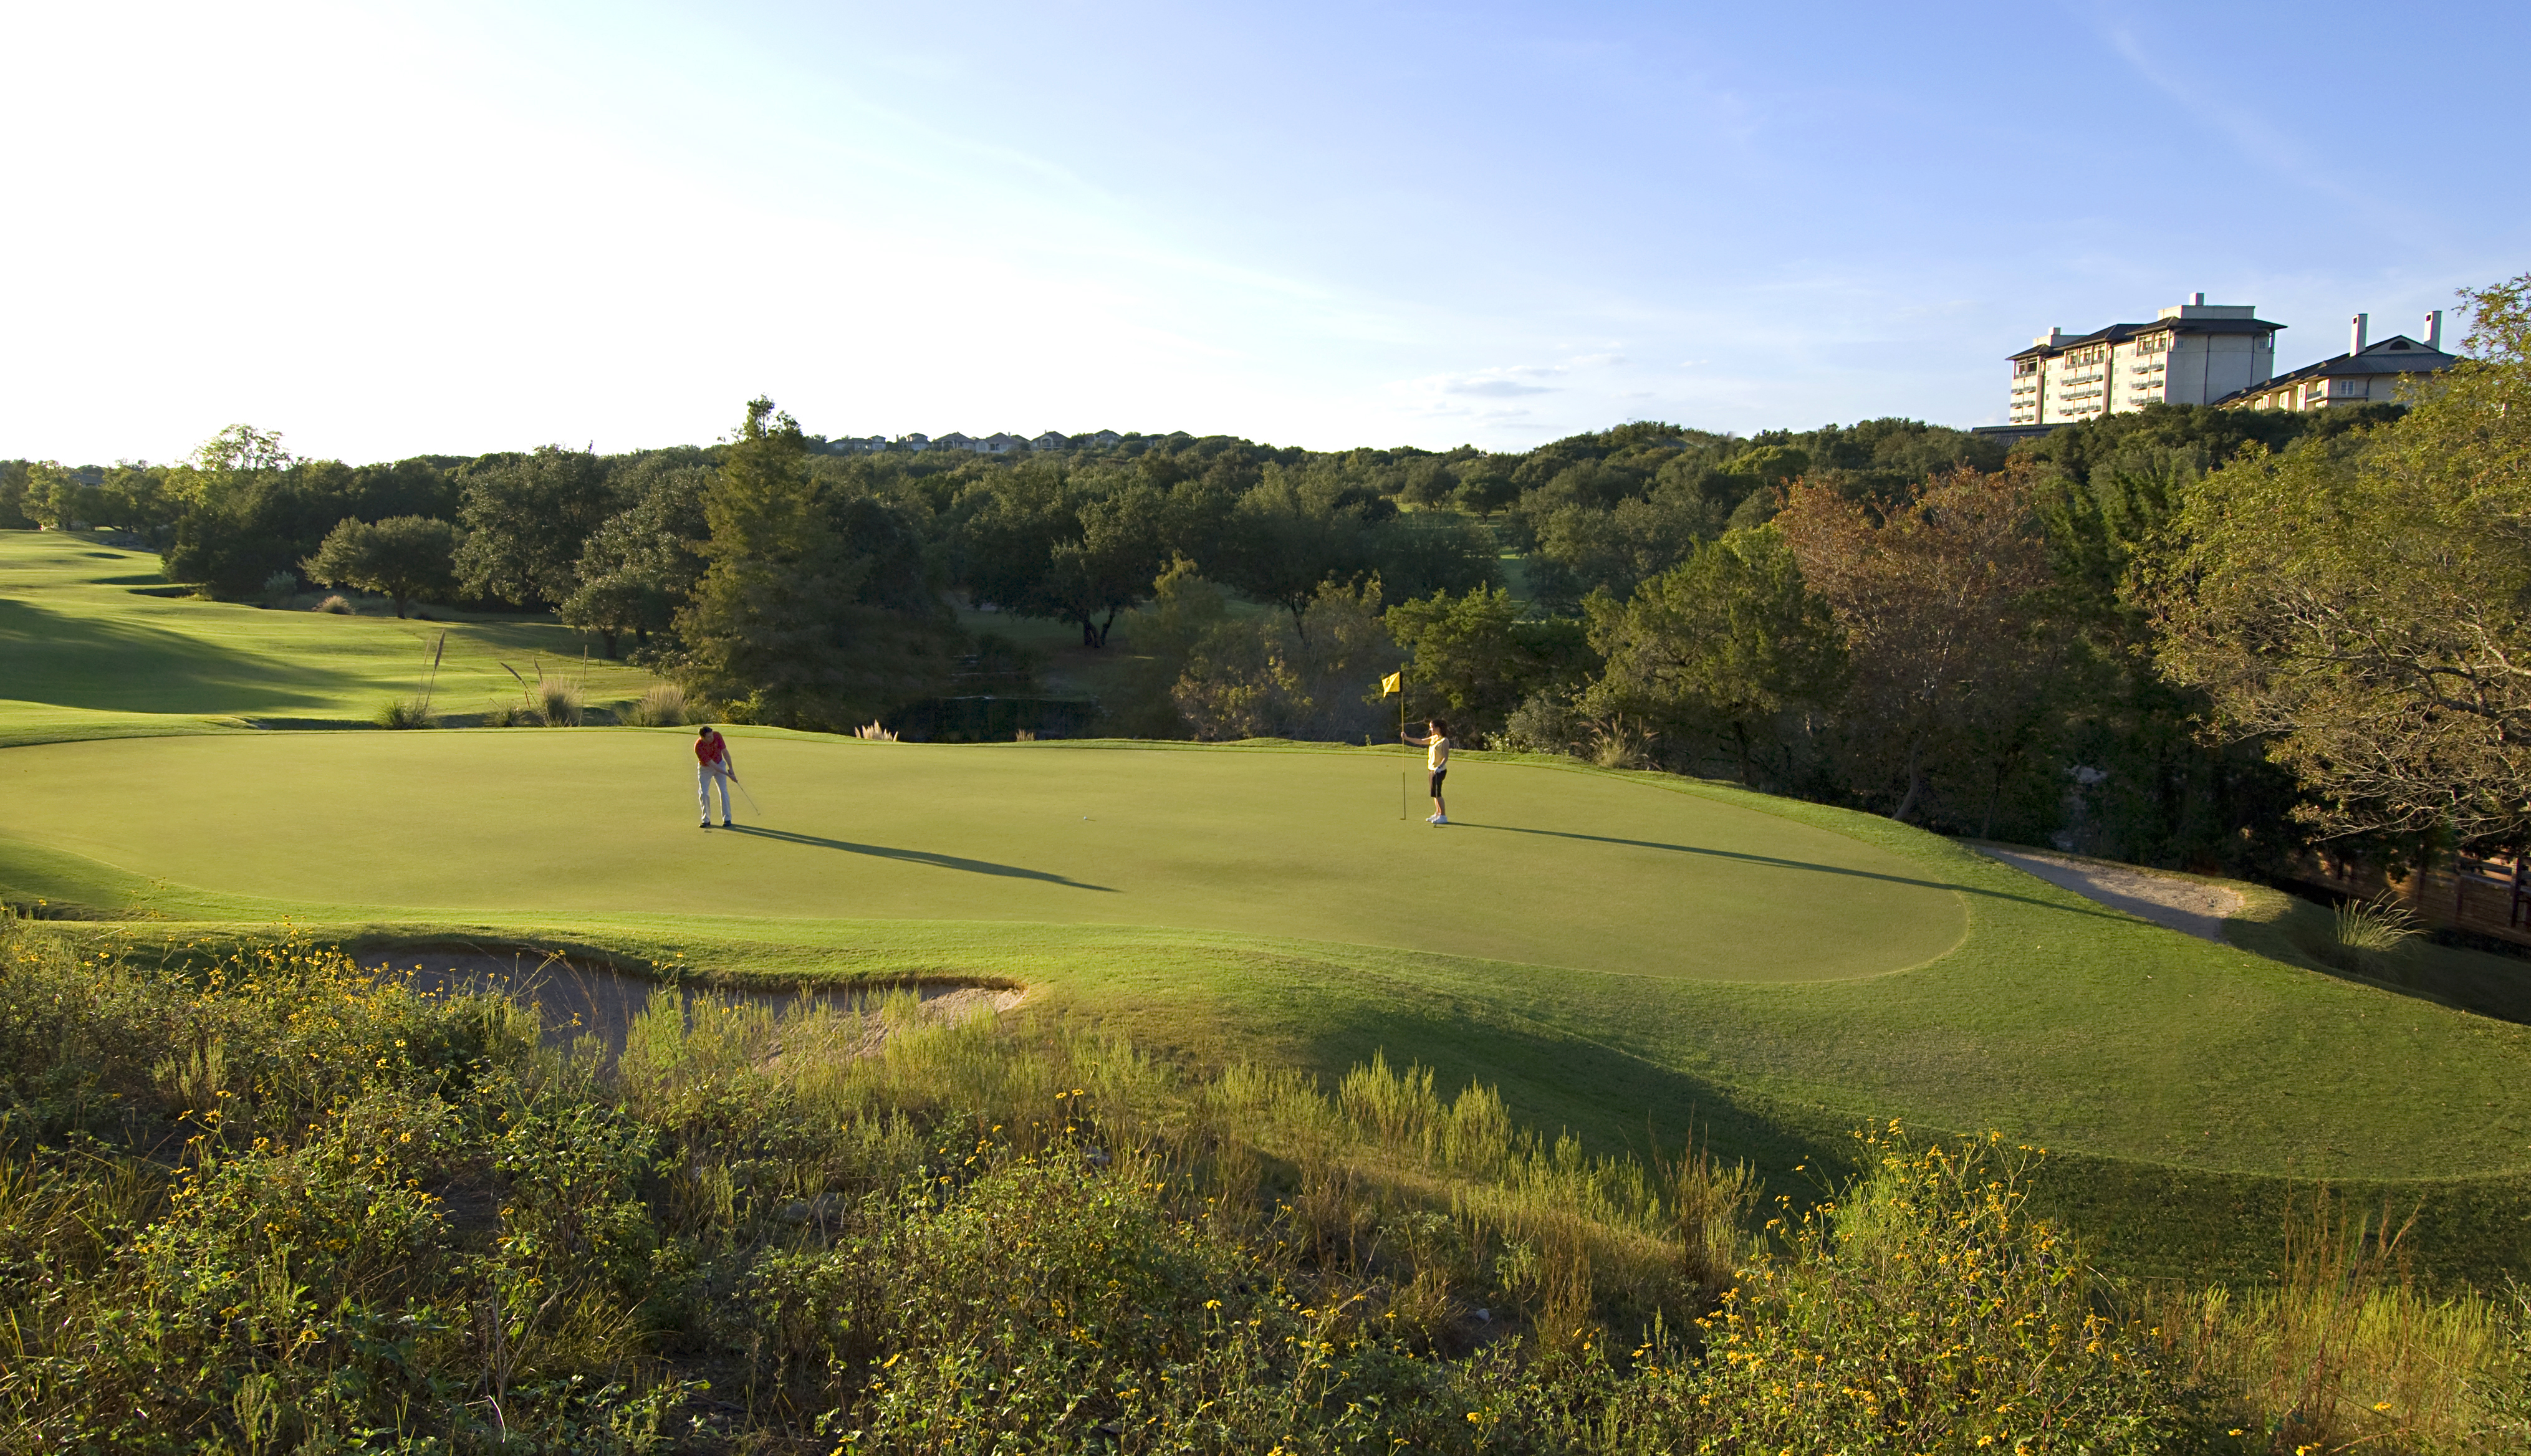 The Fazio Foothills course at the Omni Barton Creek Resort & Spa in Austin.